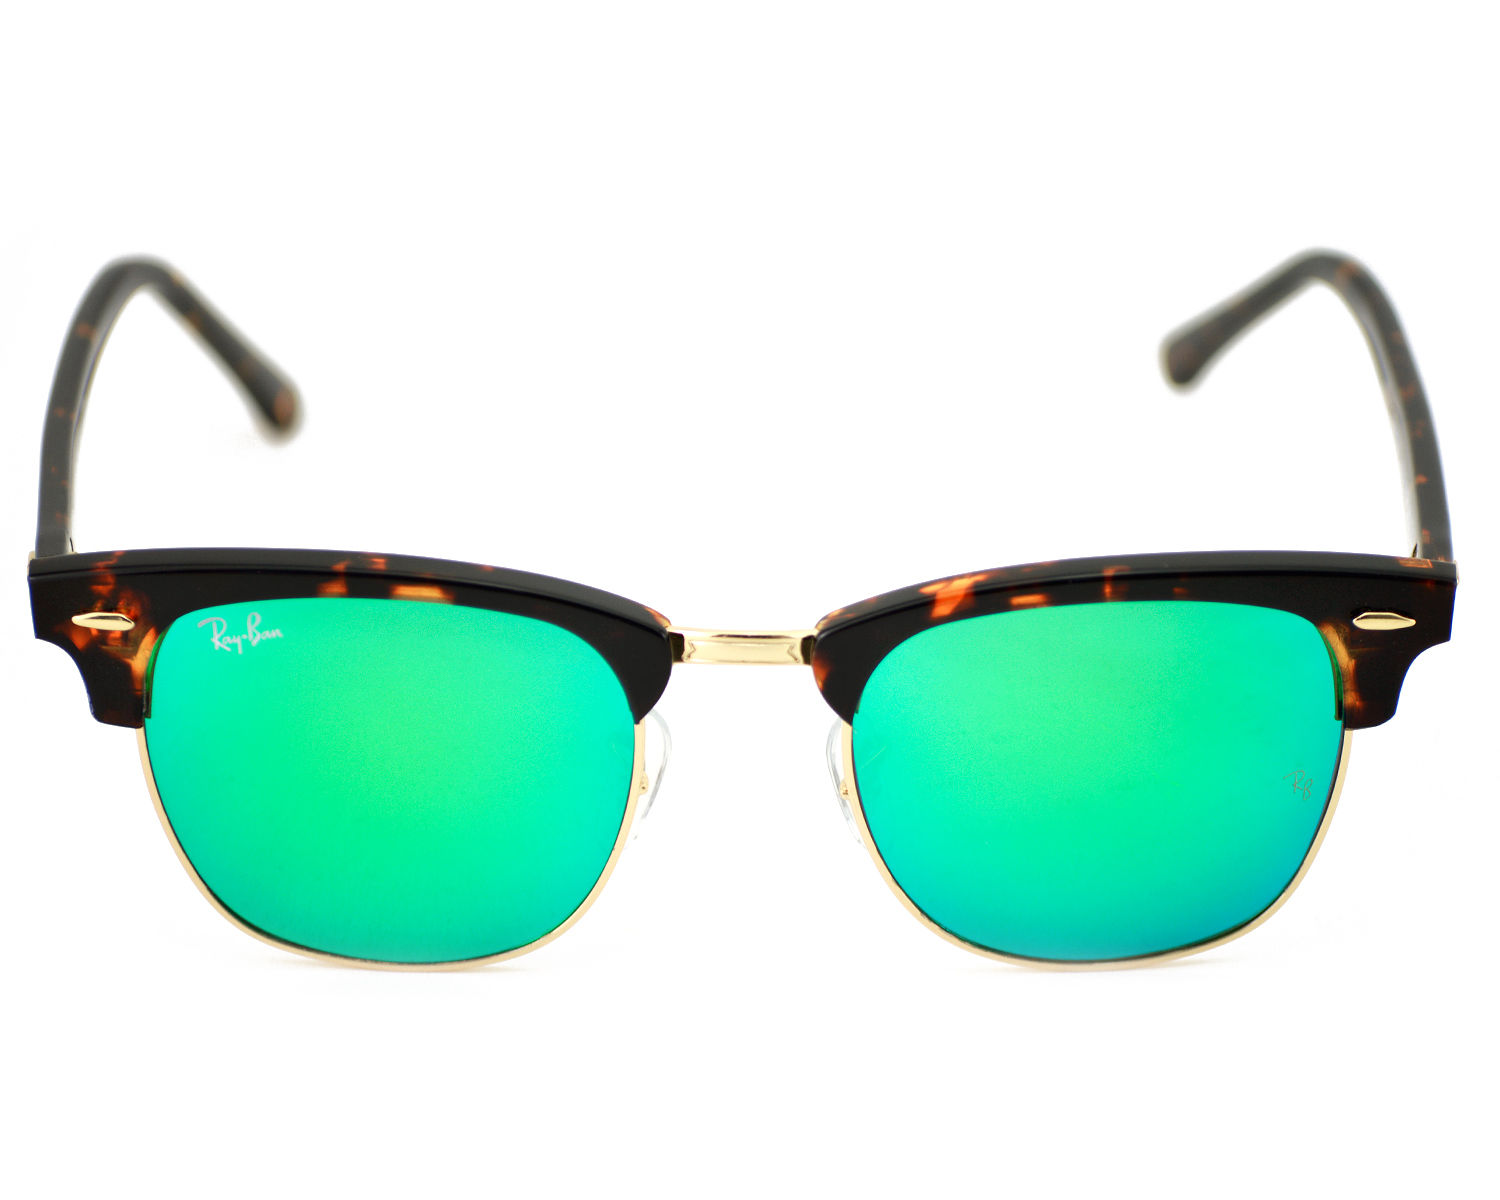 d905966eaa ... denmark ray ban rb3016 clubmaster flash lenses 1145 19 tortoise frame  green flash unisex sunglasses 51mm